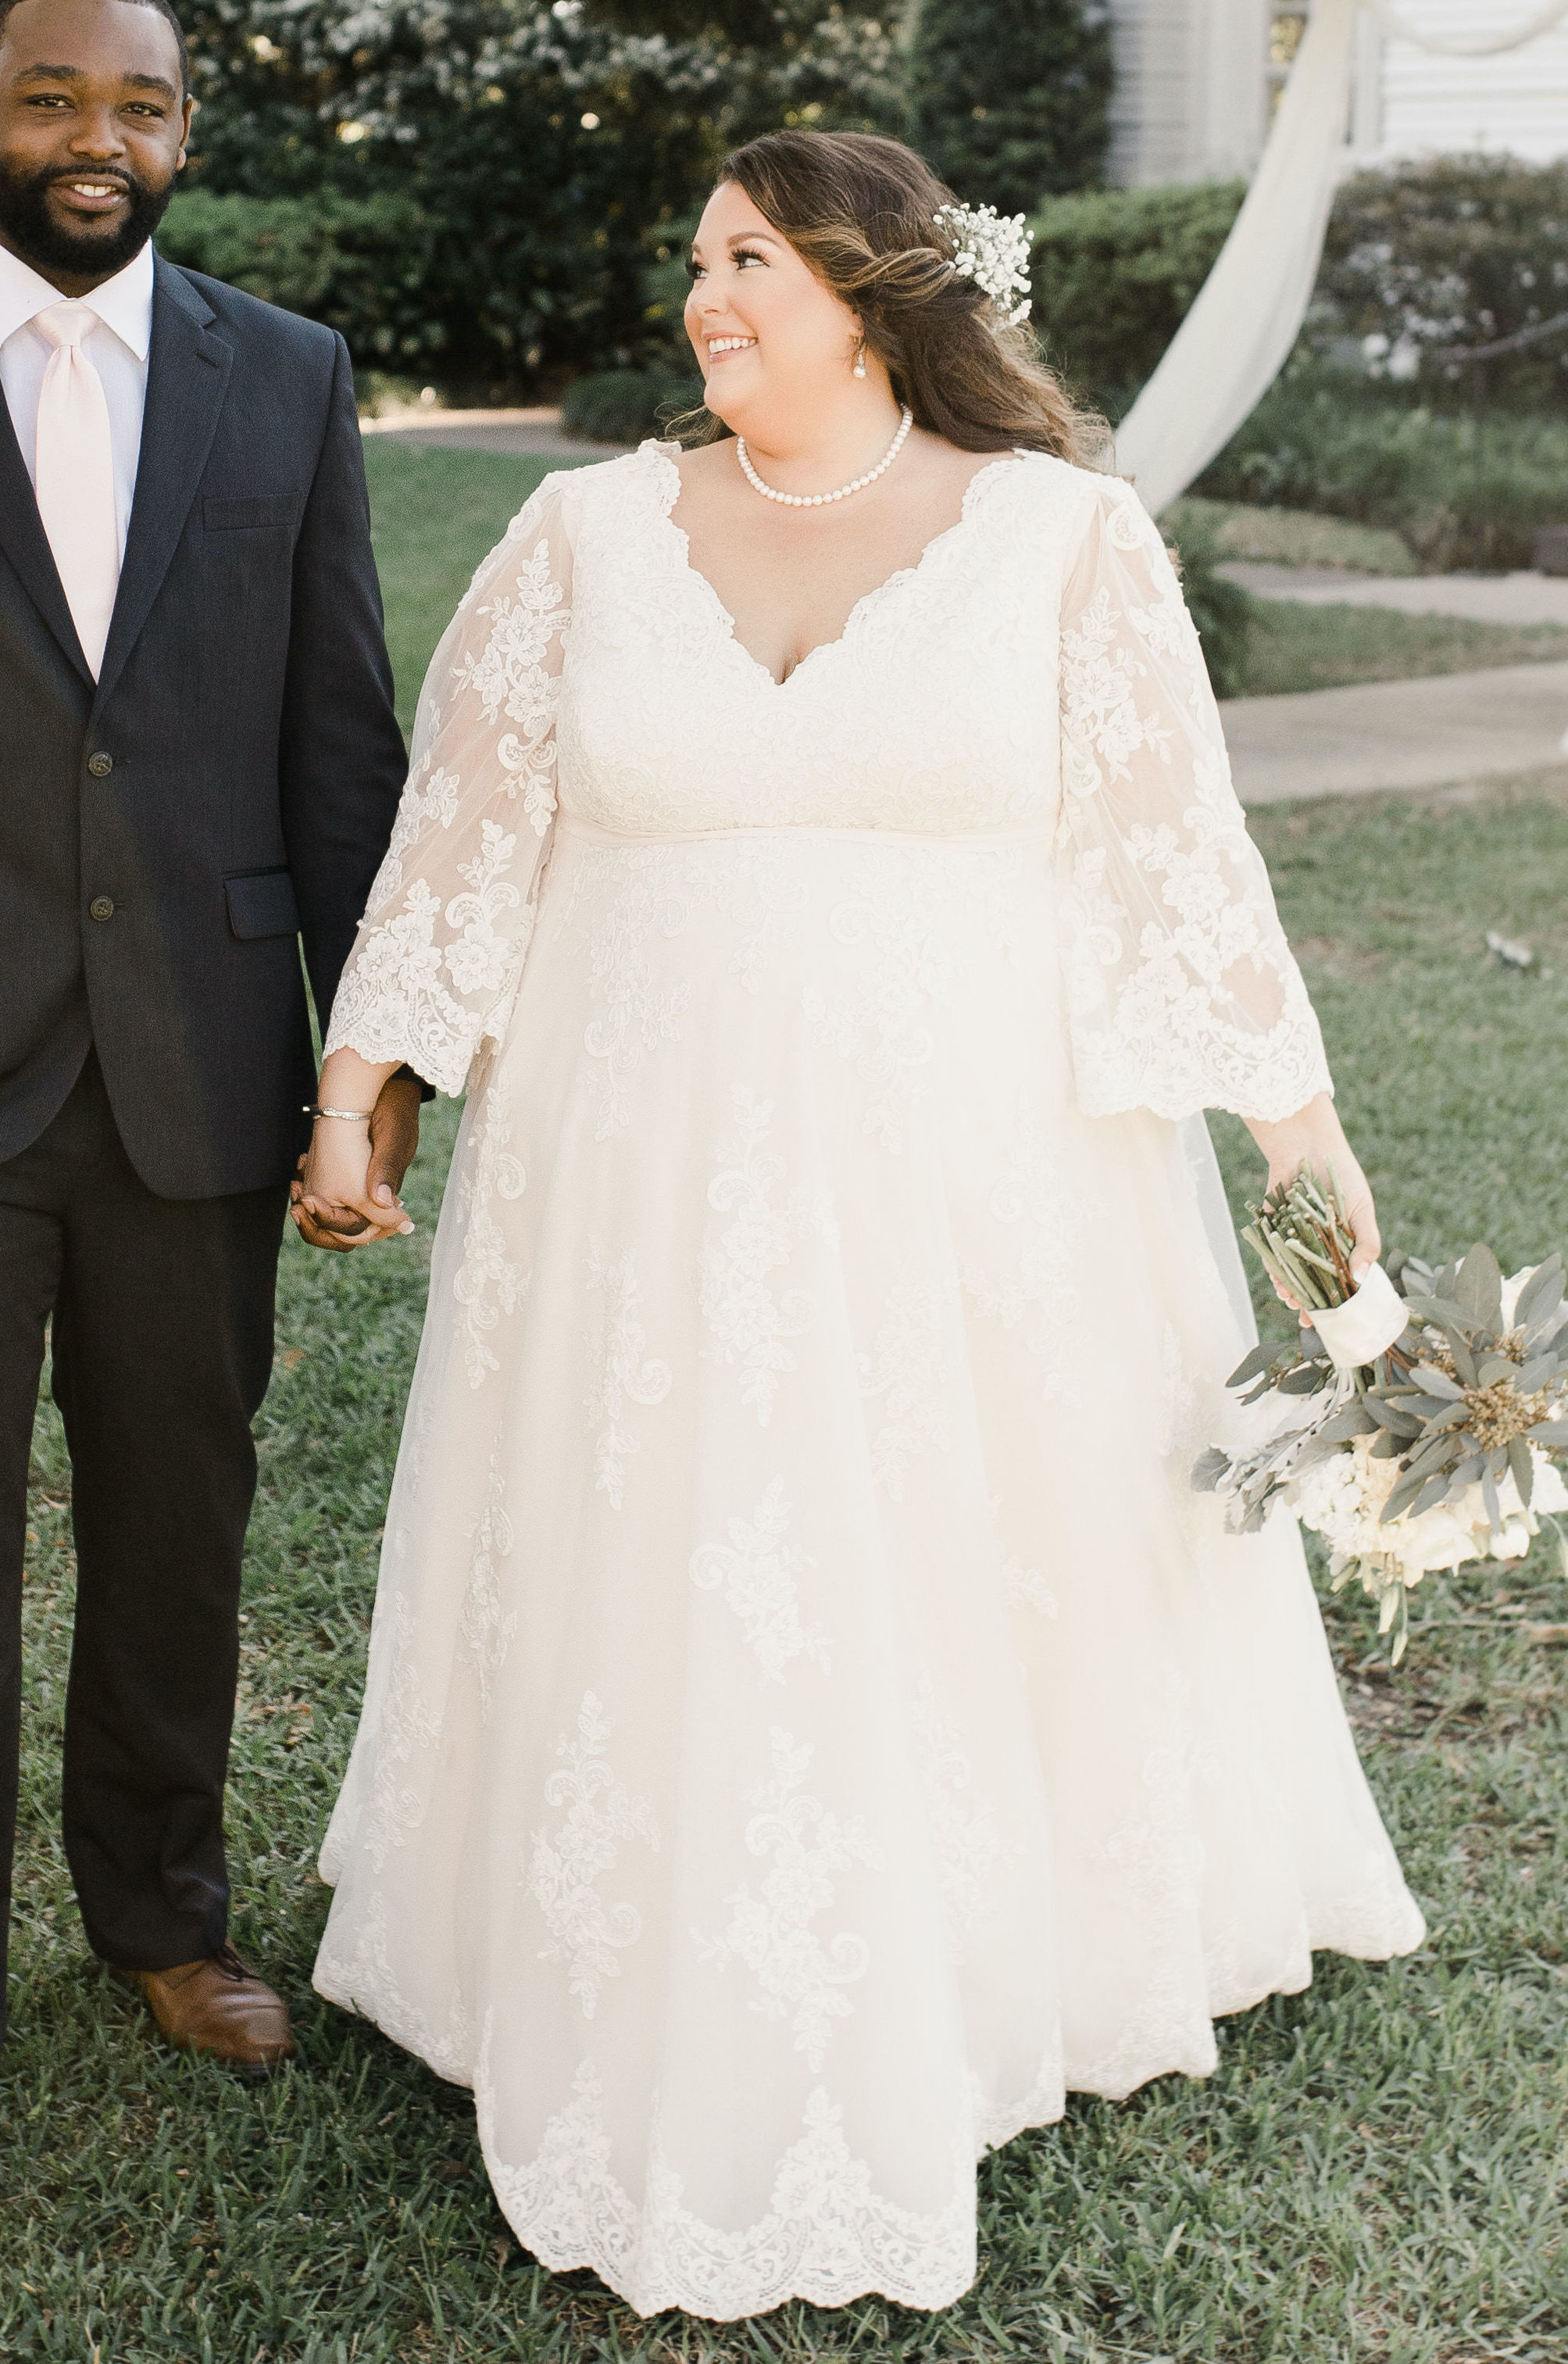 Anomalie is the best place for plus-size brides to create a wedding dress online. This brides online wedding dress has bell sleeves.